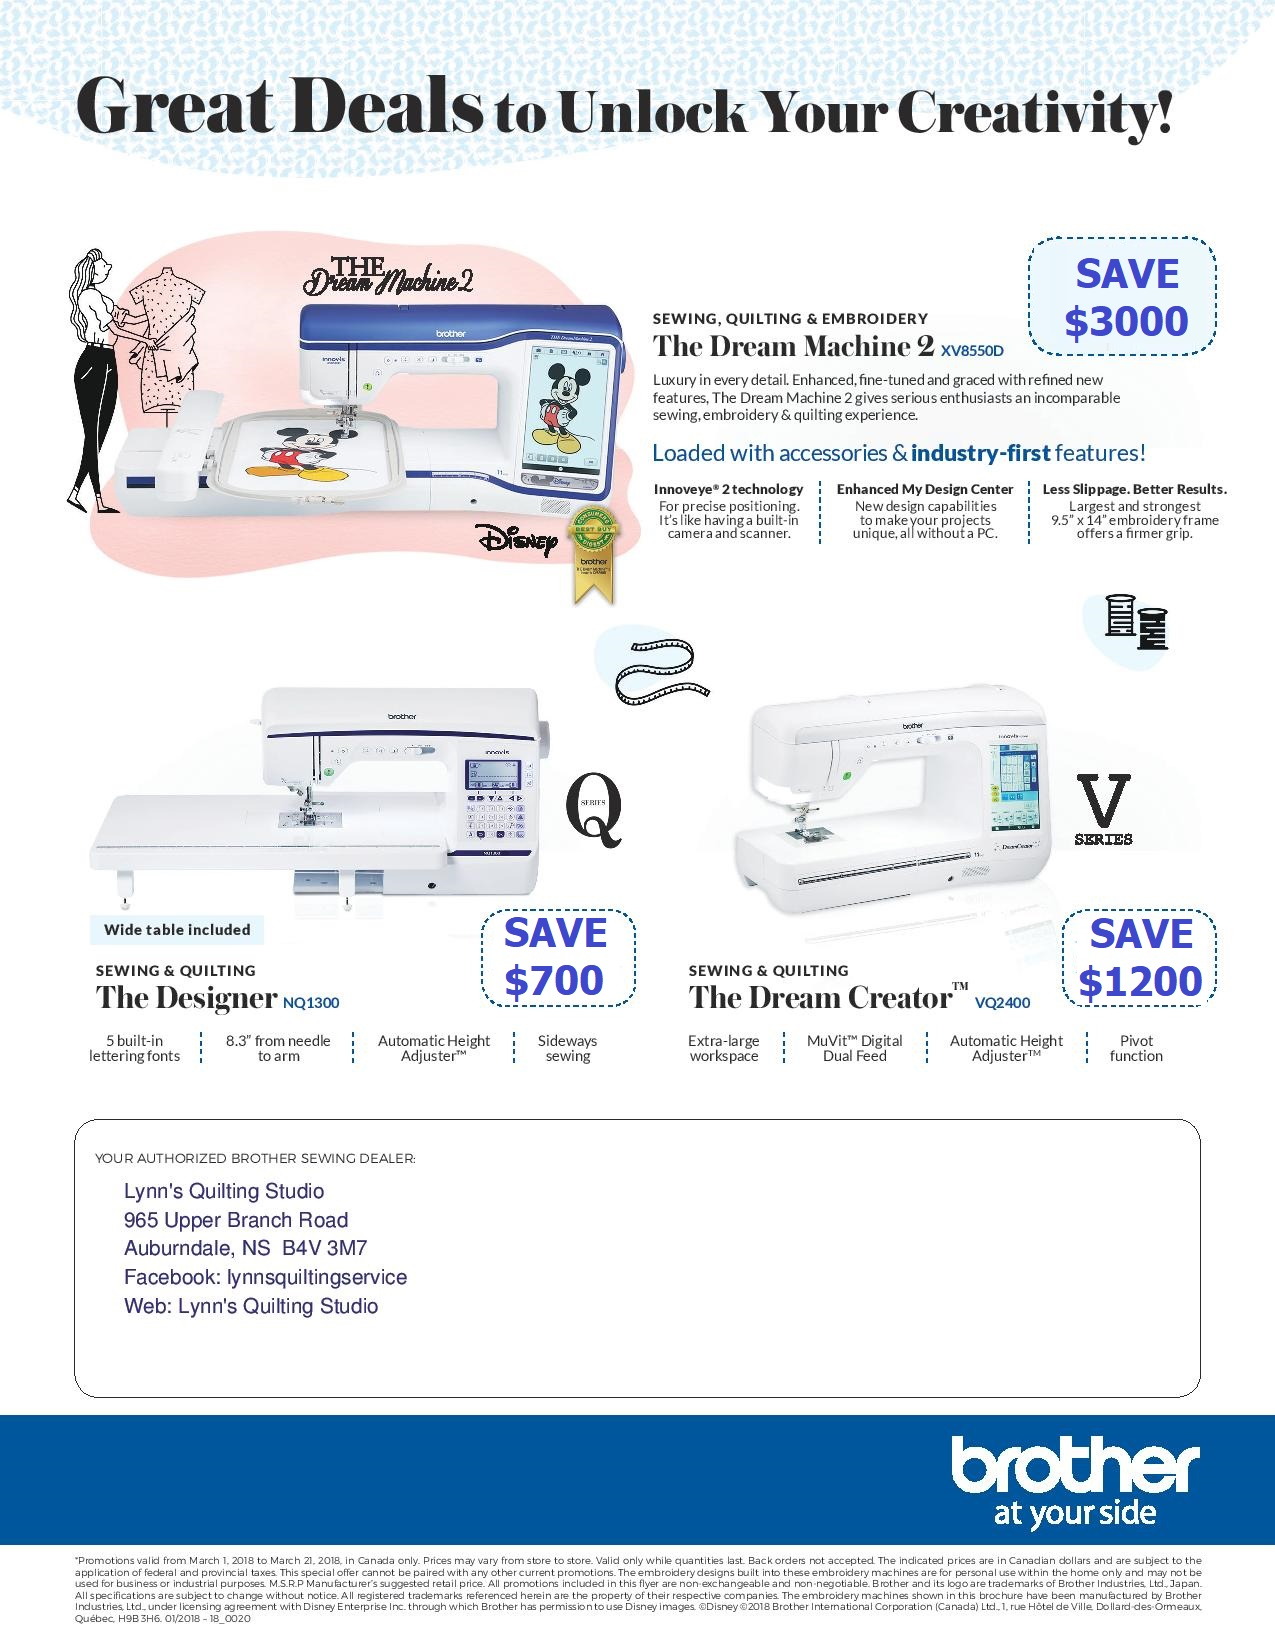 Brother_March 2018_Flyer[4912]-page-002.jpg